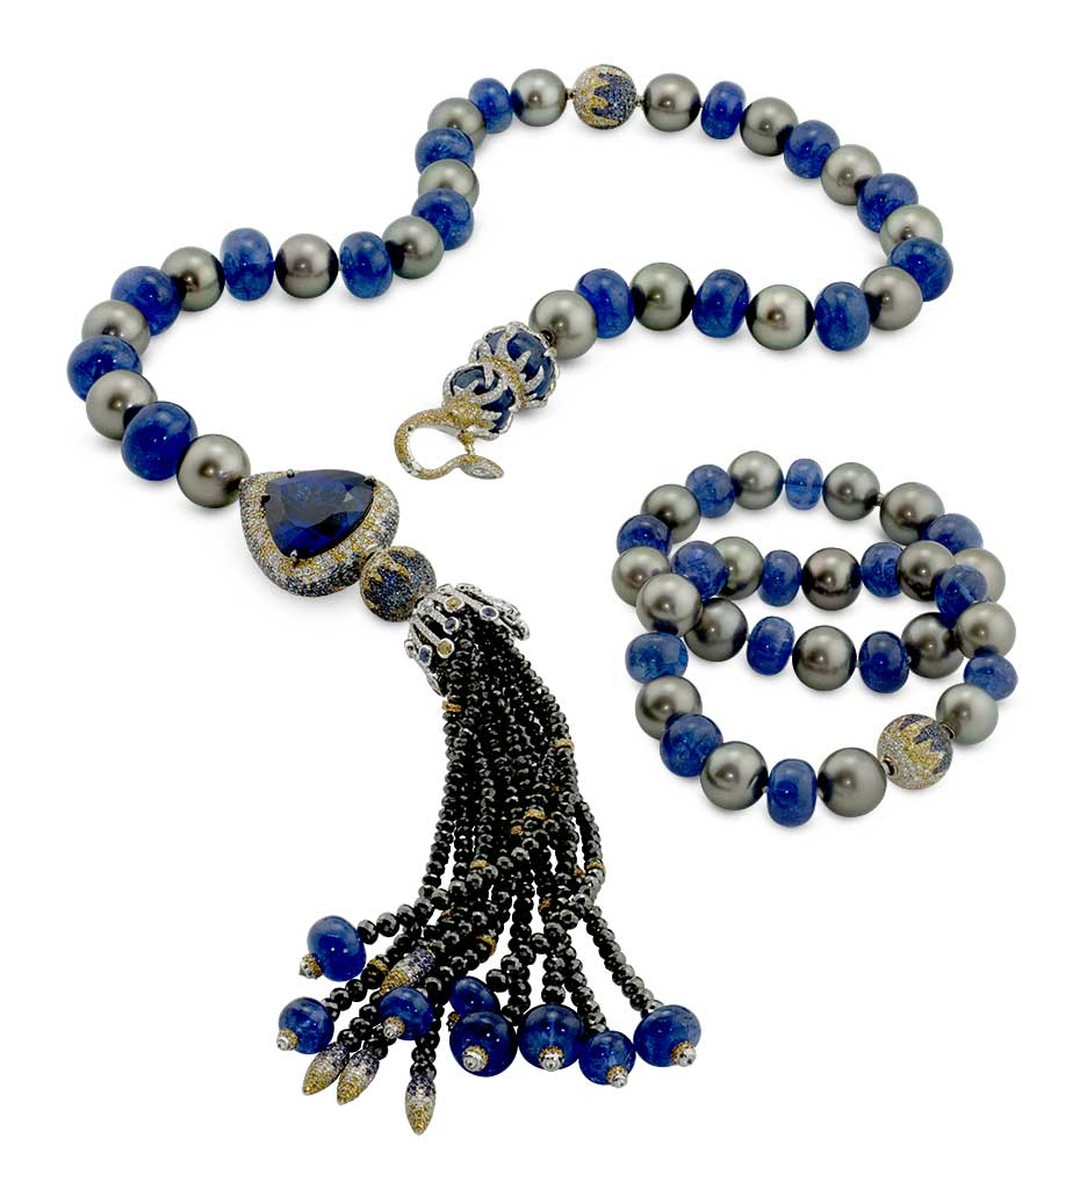 Alessio Boschi's Stardust pearl necklace, with Tahitian pearls, tanzanite beads, diamonds and sapphires. white and yellow diamonds, and blue and purple sapphires. It can be worn as a long lariat necklace or two necklaces and two bracelets, with or without